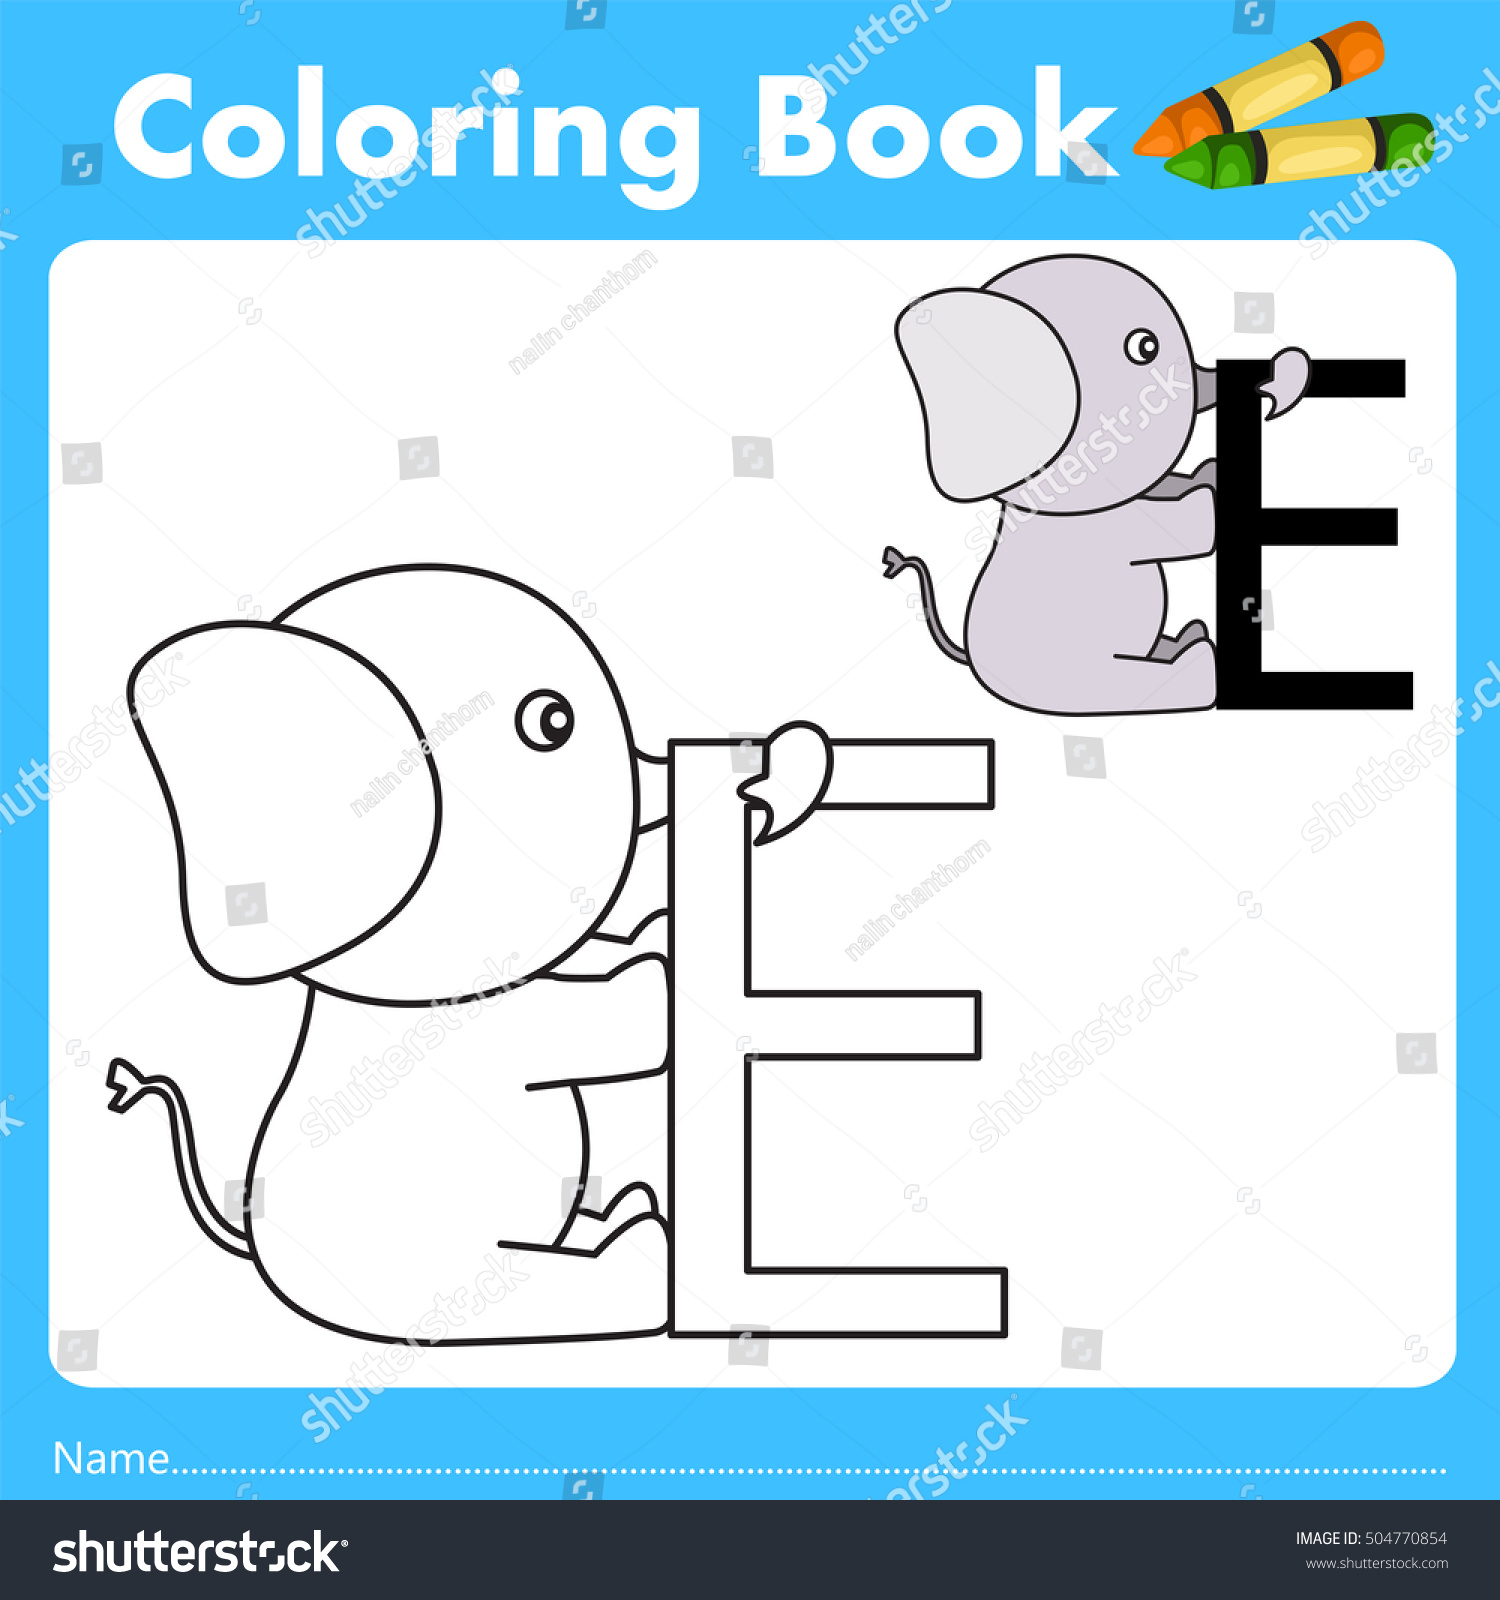 Book color illustrator - Illustrator Of Color Book With Elephant Animal